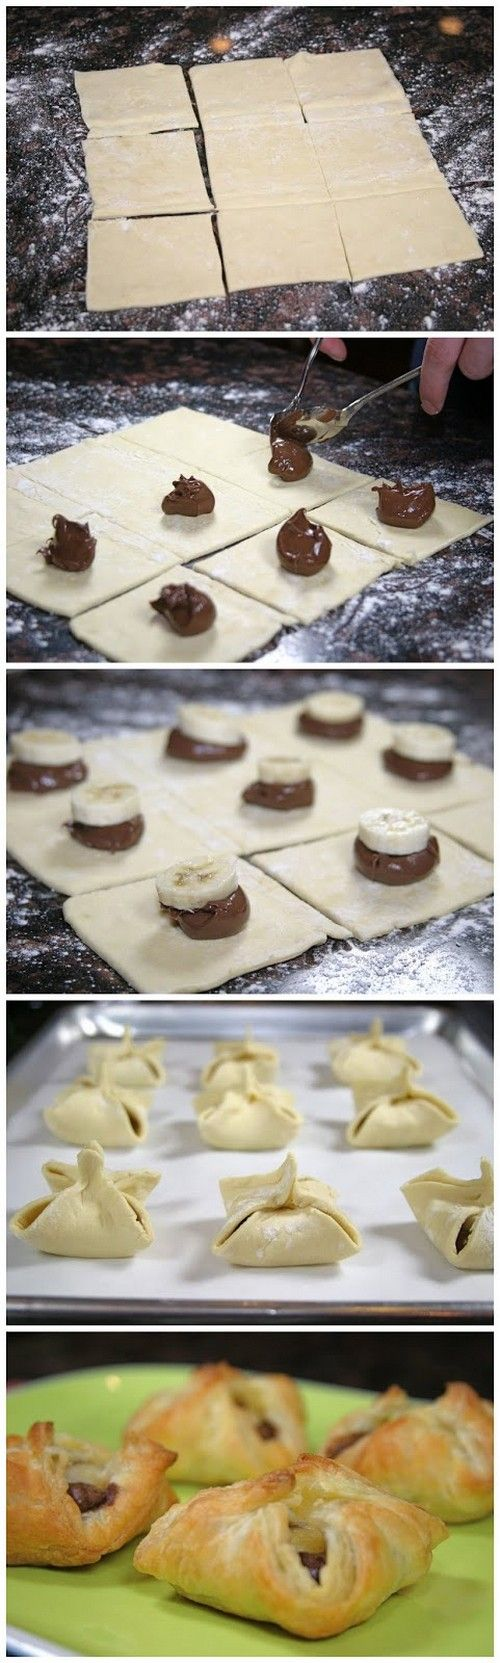 Nutella Banana Pastry Purses